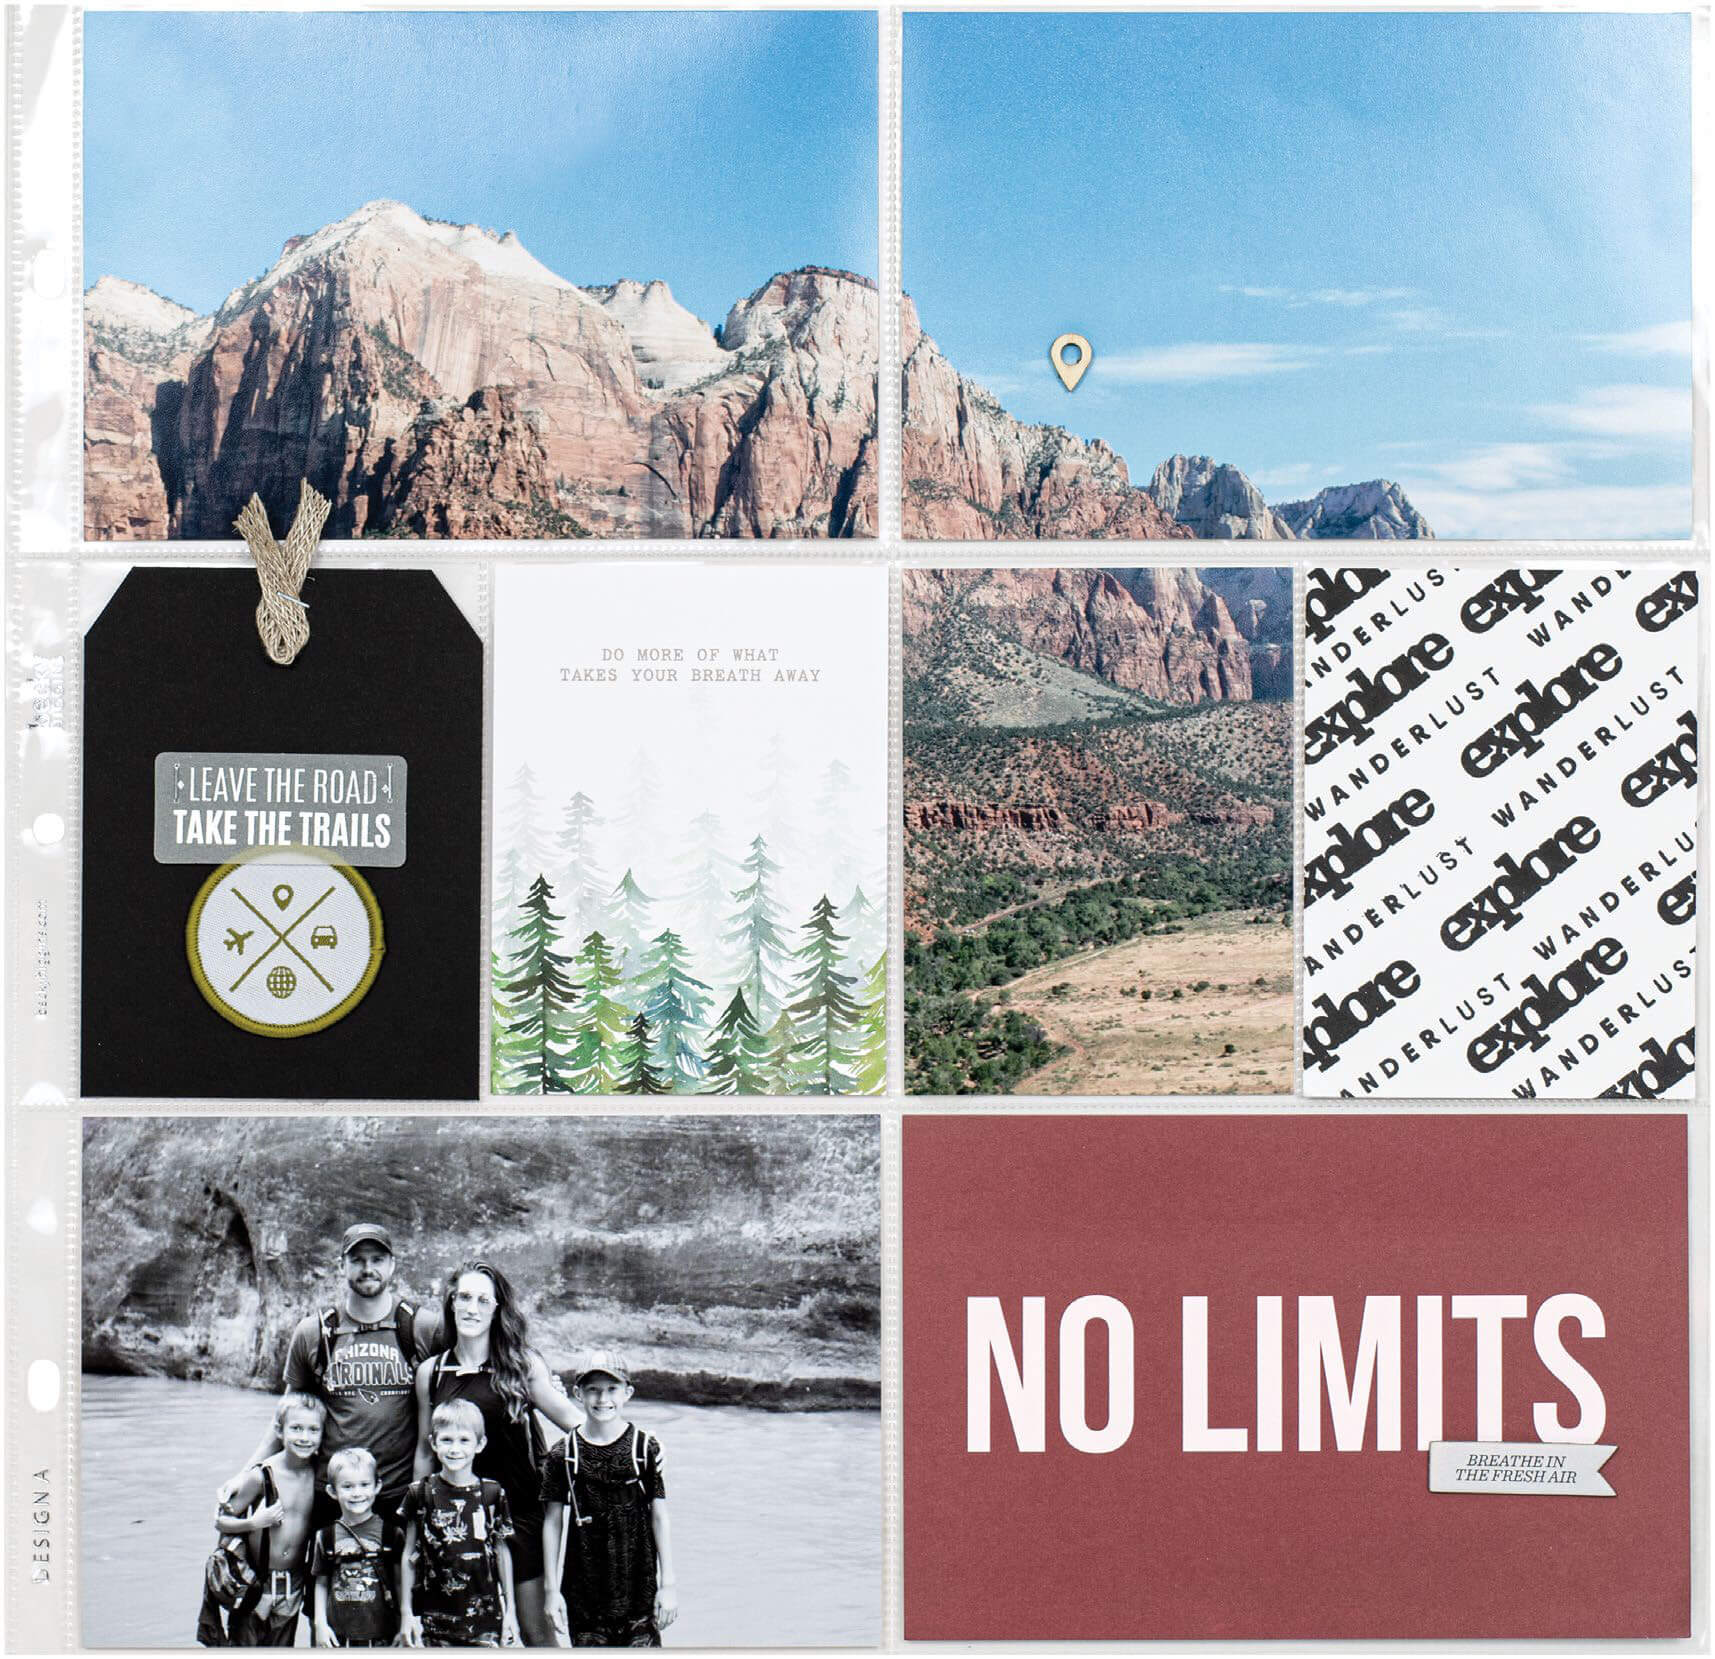 Scrapbook & Cards Today - Winter 2019 - No Limits by Candace Perkins